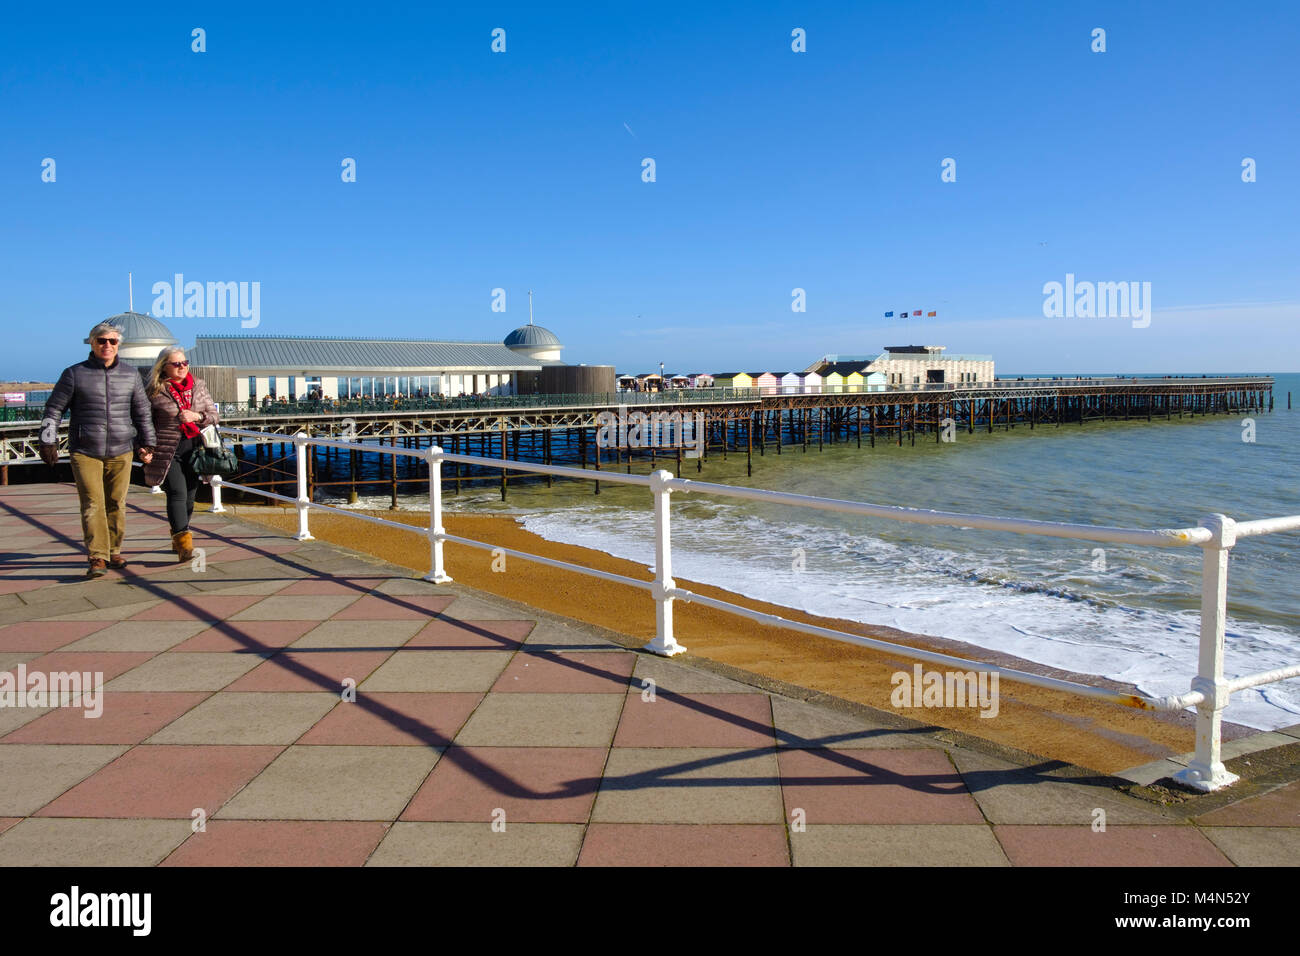 Hastings, East Sussex UK. A couple strolling along the promenade under a cloudless blue sky on a mild sunny day - Stock Image